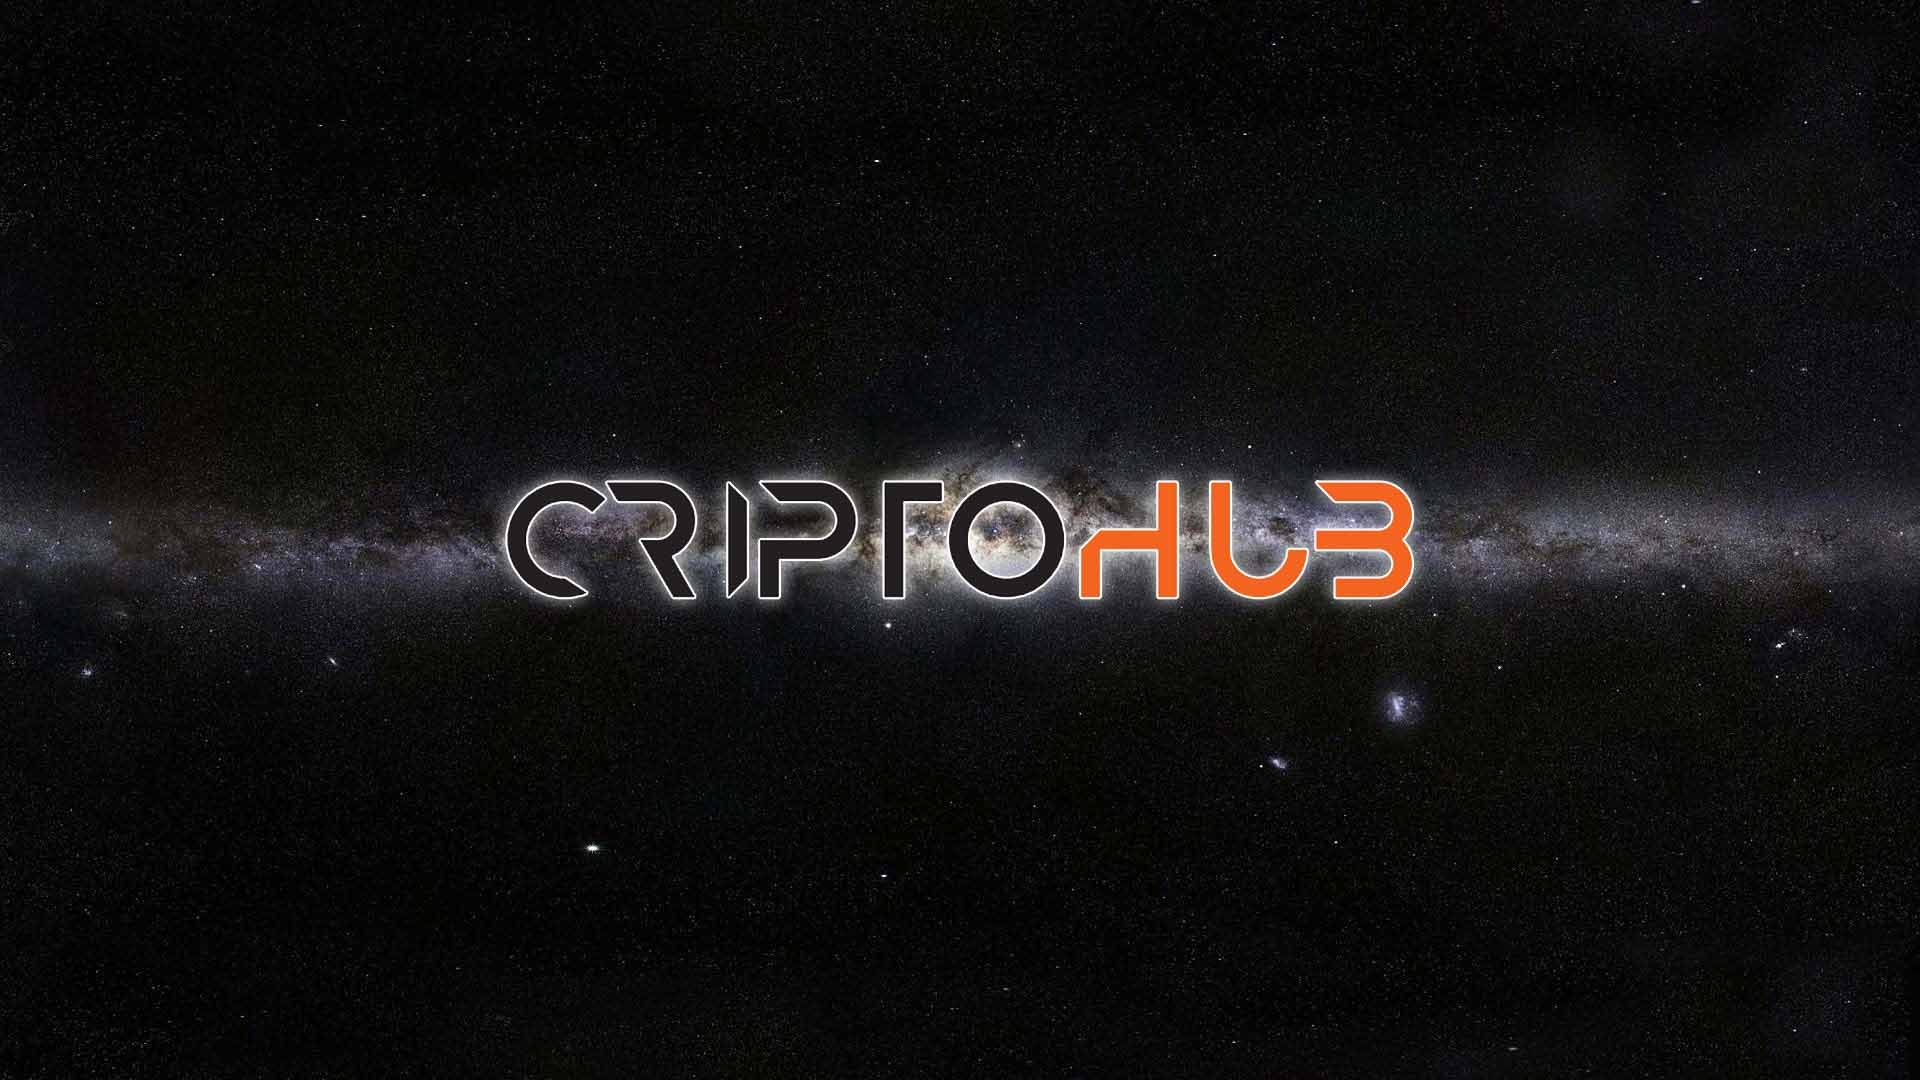 CriptoHub Launches Highly Anticipated ICO Backed By Trusted Cryptocurrency Exchange Based In Brazil